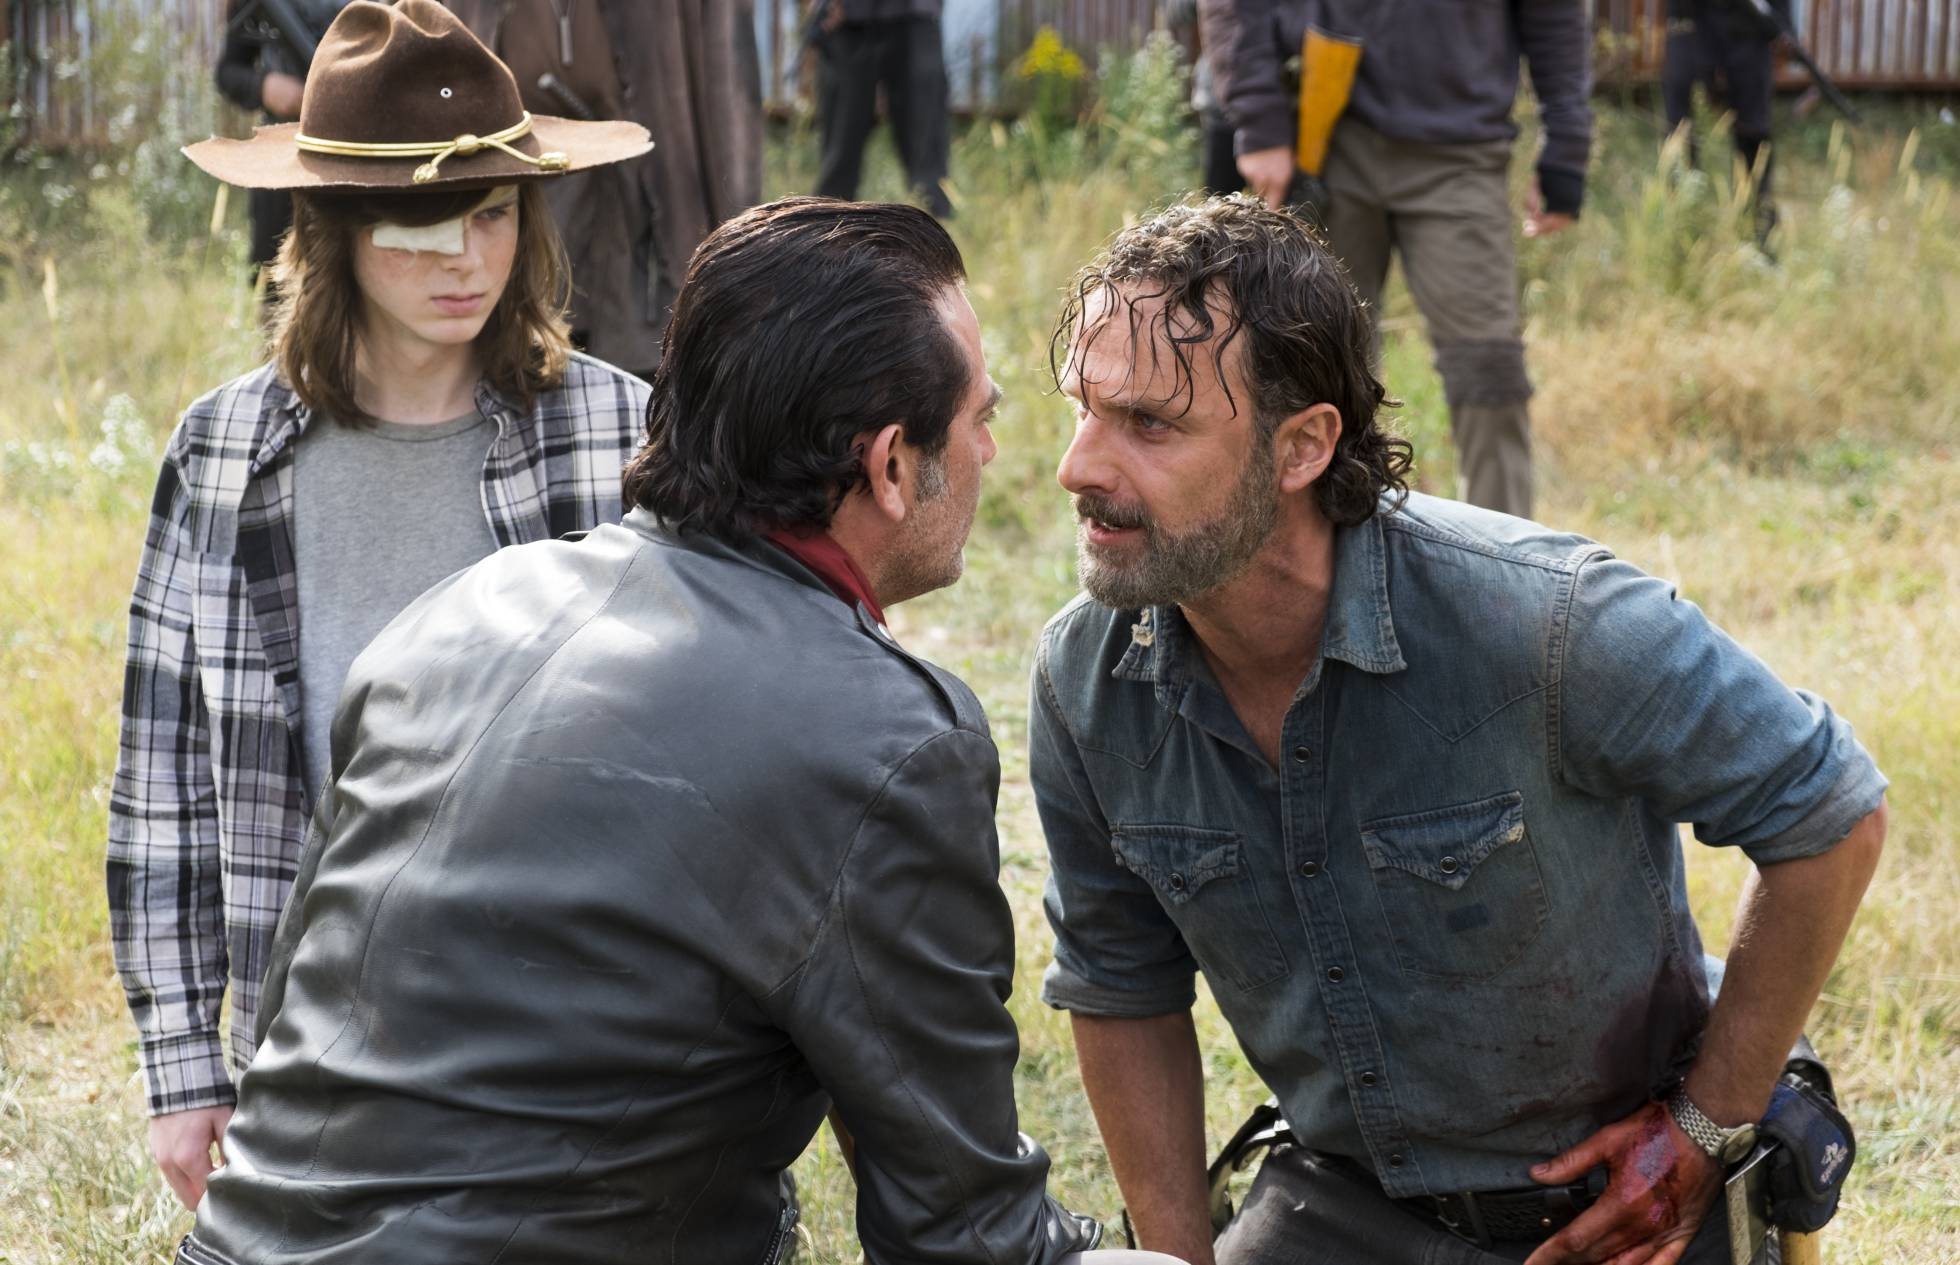 Fans de The Walking Dead odian al director de la serie